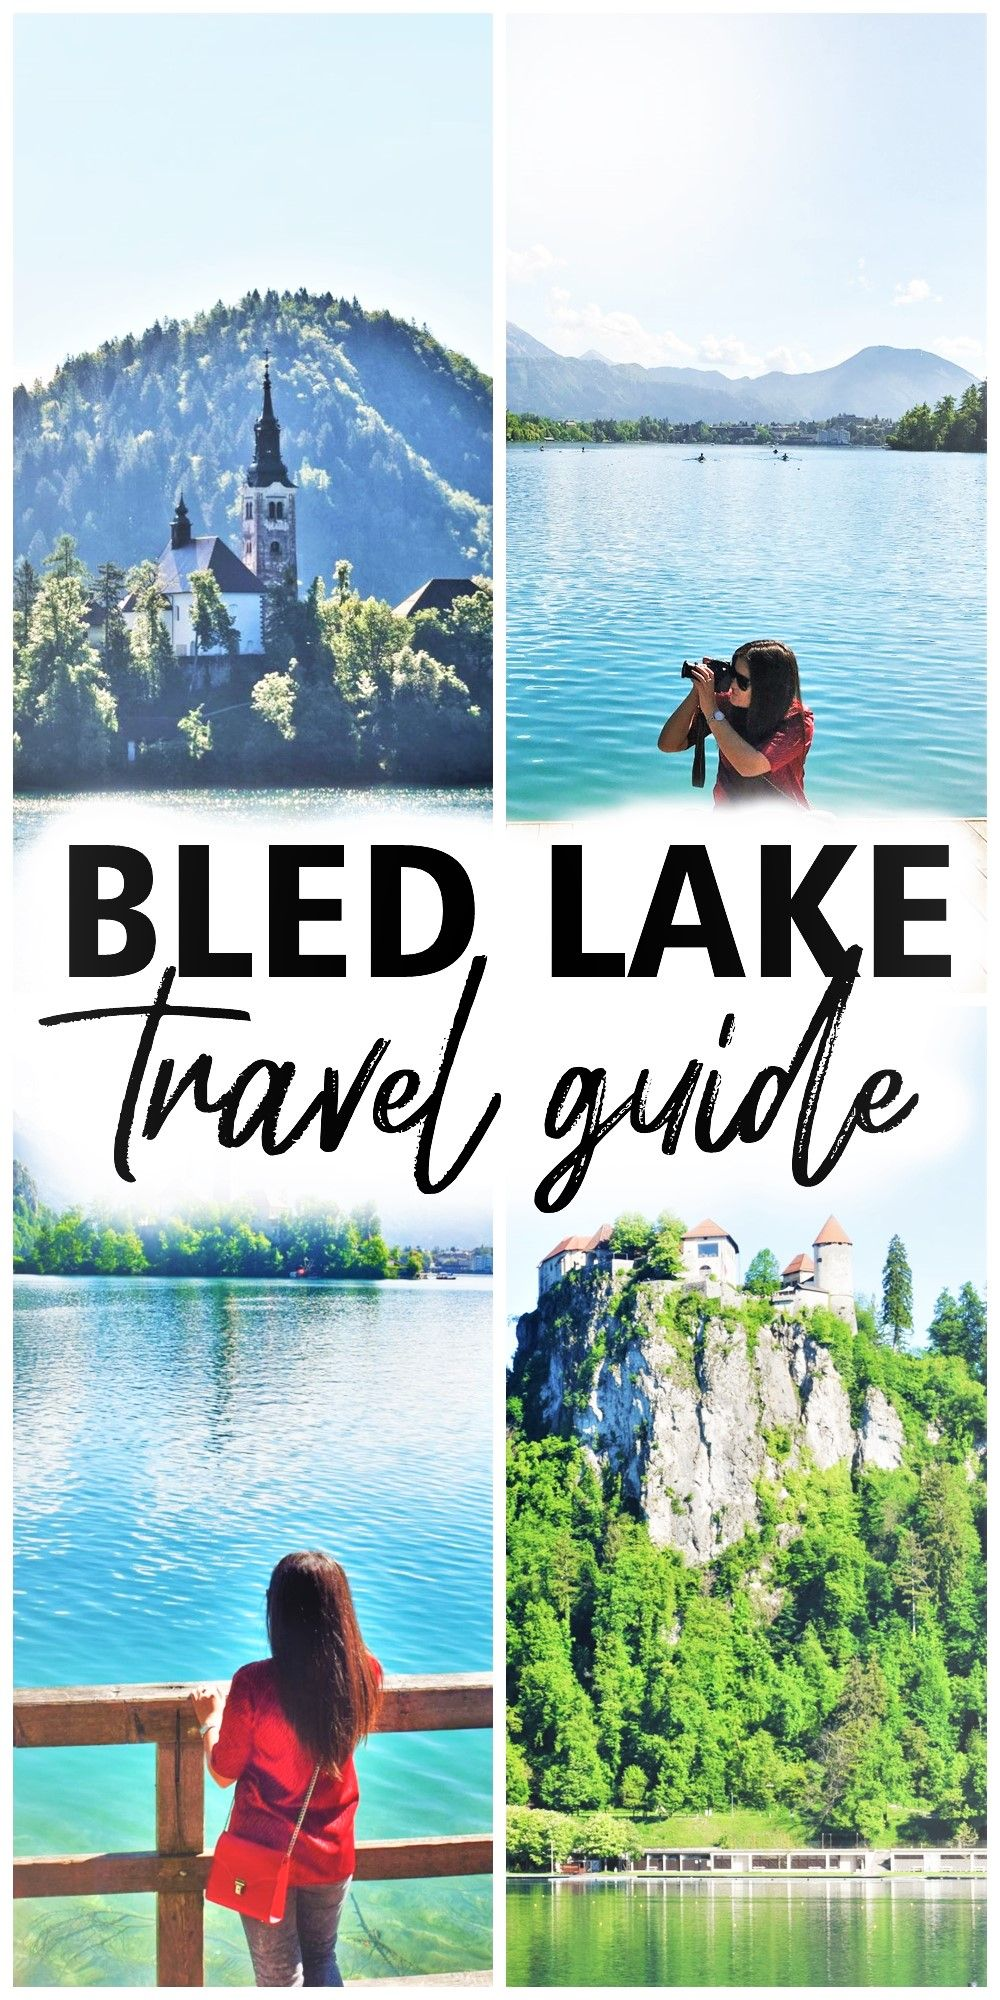 Bled Lake Slovenia Travel Guide In 2020 Europe Travel Slovenia Travel Europe Travel Destinations